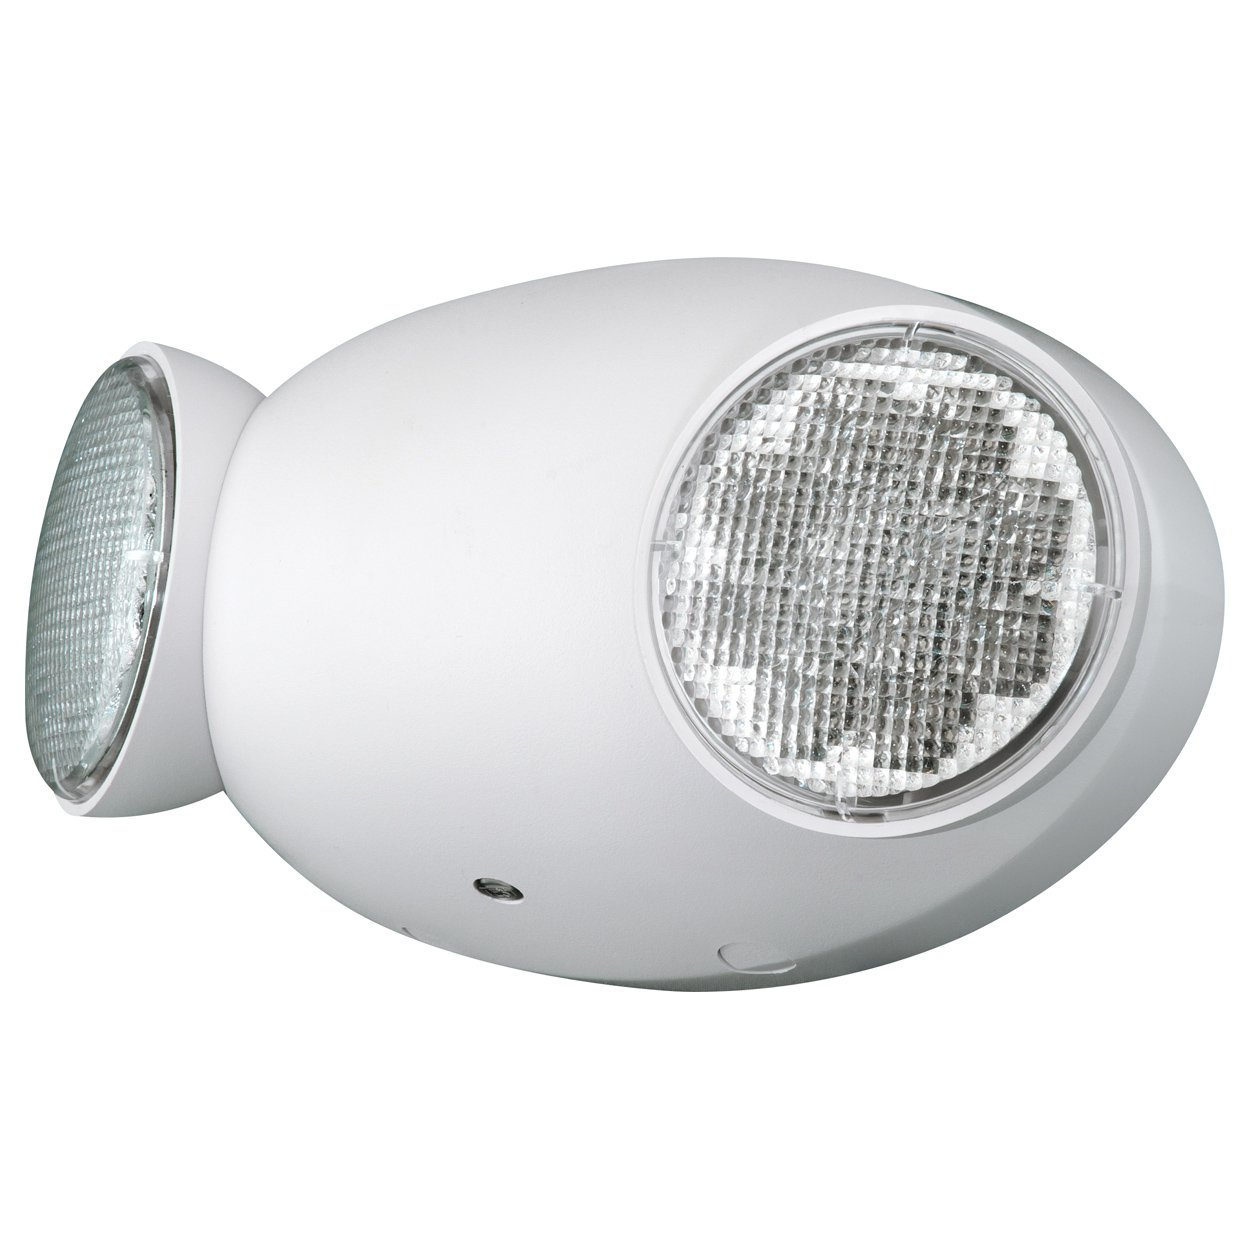 Compass CU2RC Hubbell Lighting LED 2 Head Emergency Light with Remote Capacity, White by COMPASS